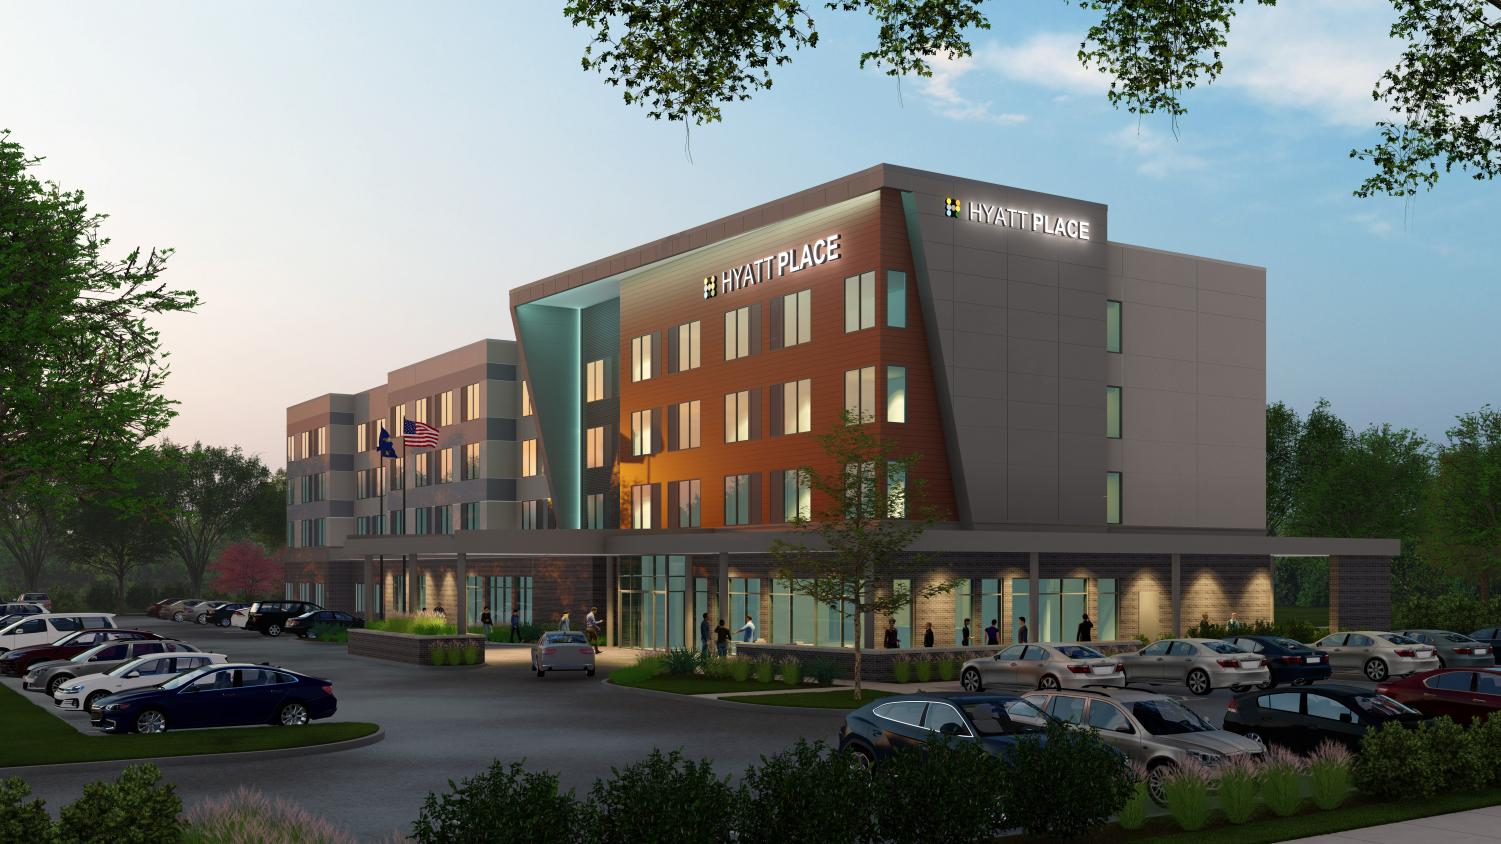 Rendering of the Hyatt Place hotel, set to be built on Innovation Campus.